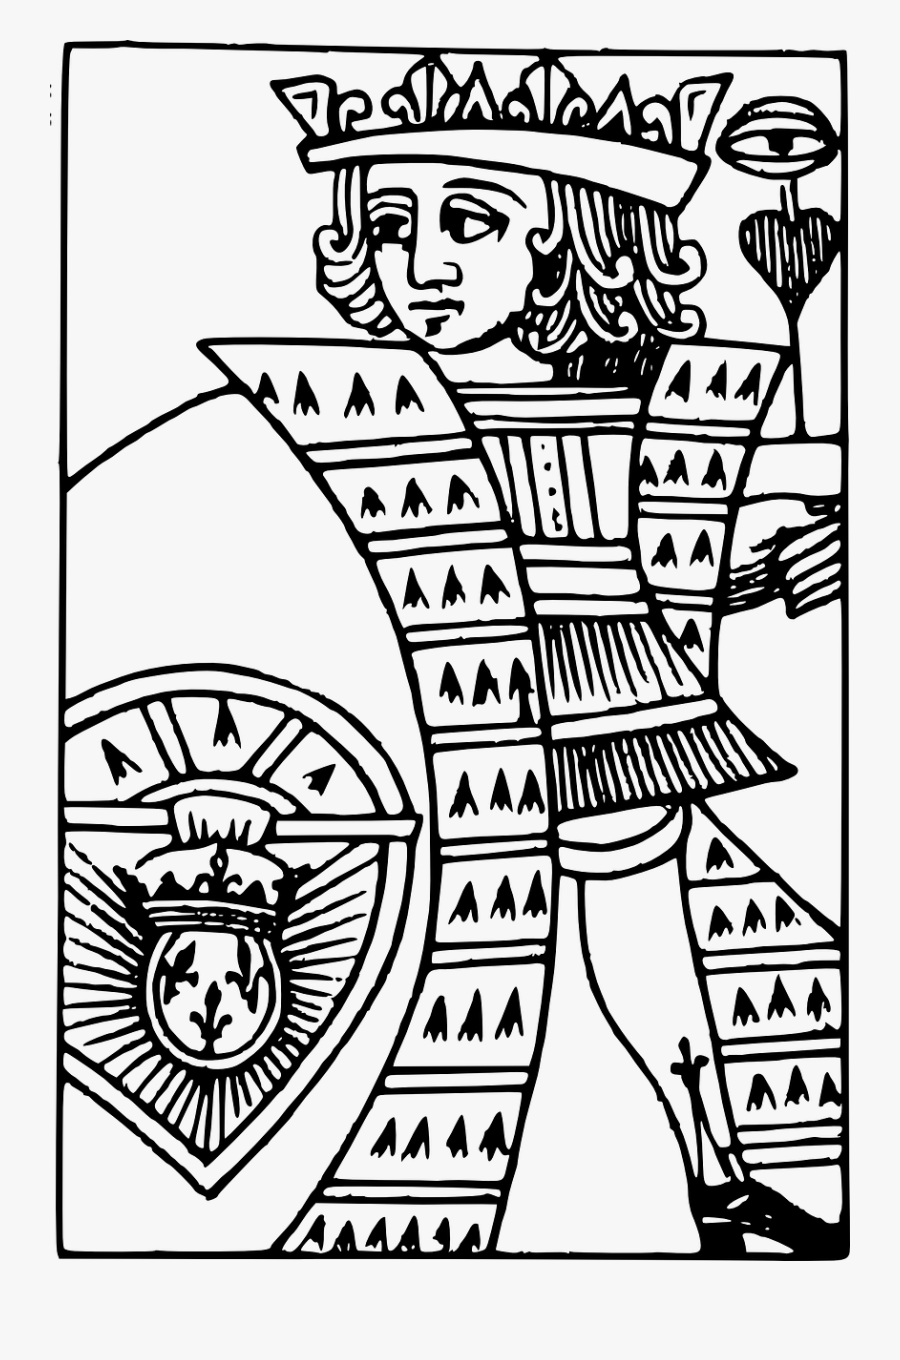 Playing Card King Card Deck Free Picture - Playing Card Deck Line Art, Transparent Clipart